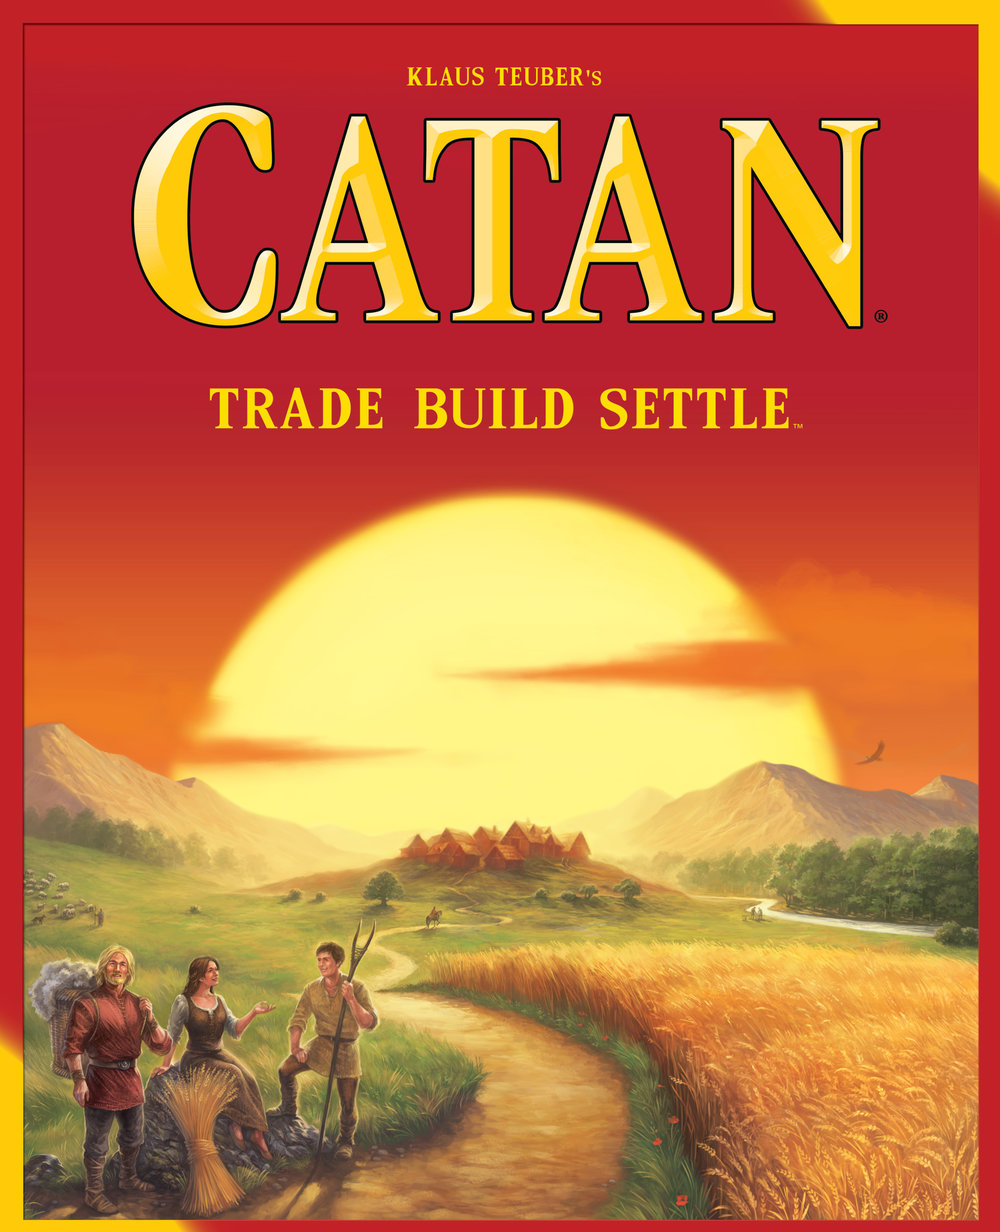 Catan - INTRODUCES: Resource ManagmentSettlers of Catan is indeed a classic and allowed the genre of Euro games to grow exponentially into what it is today. Catan is a perfect game to introduce folks new to board gaming and gives a diverse taste of different game mechanics. Not only is there strategic thinking that goes into playing this game, there is also strategic interactions (mind games if you will) that can play a vital part in contributing to a victory...and may contribute to a quarrel or two after the game has ended.It's a must have game for your collection as it is a very easy Euro Game to teach others who are new to the board game hobby.